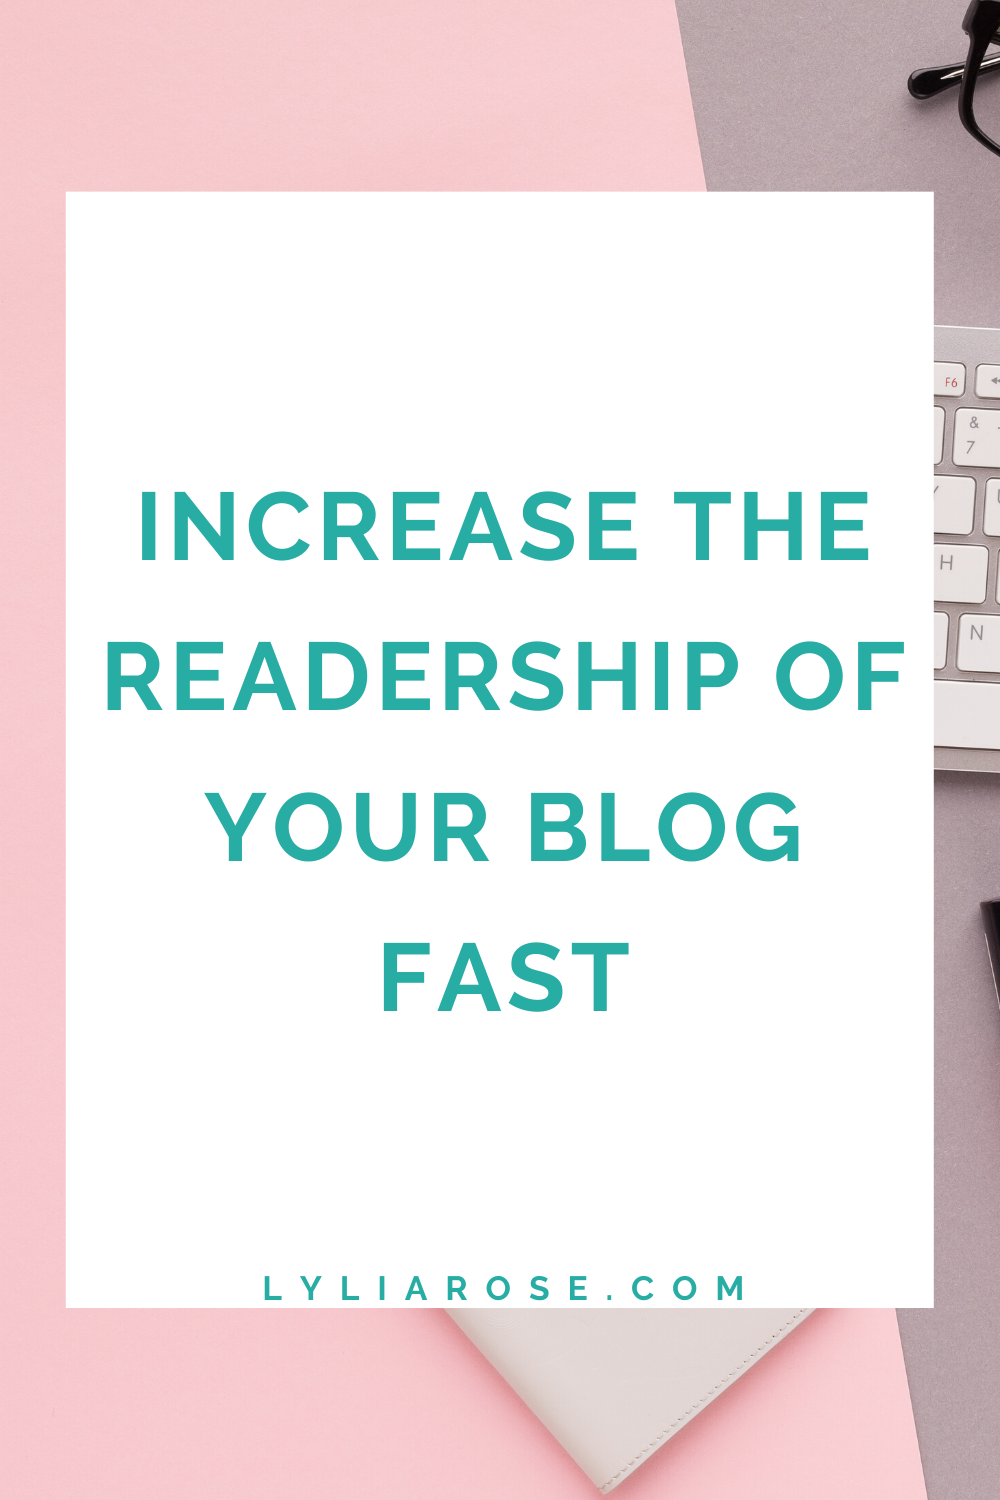 Increase the readership of your blog fast